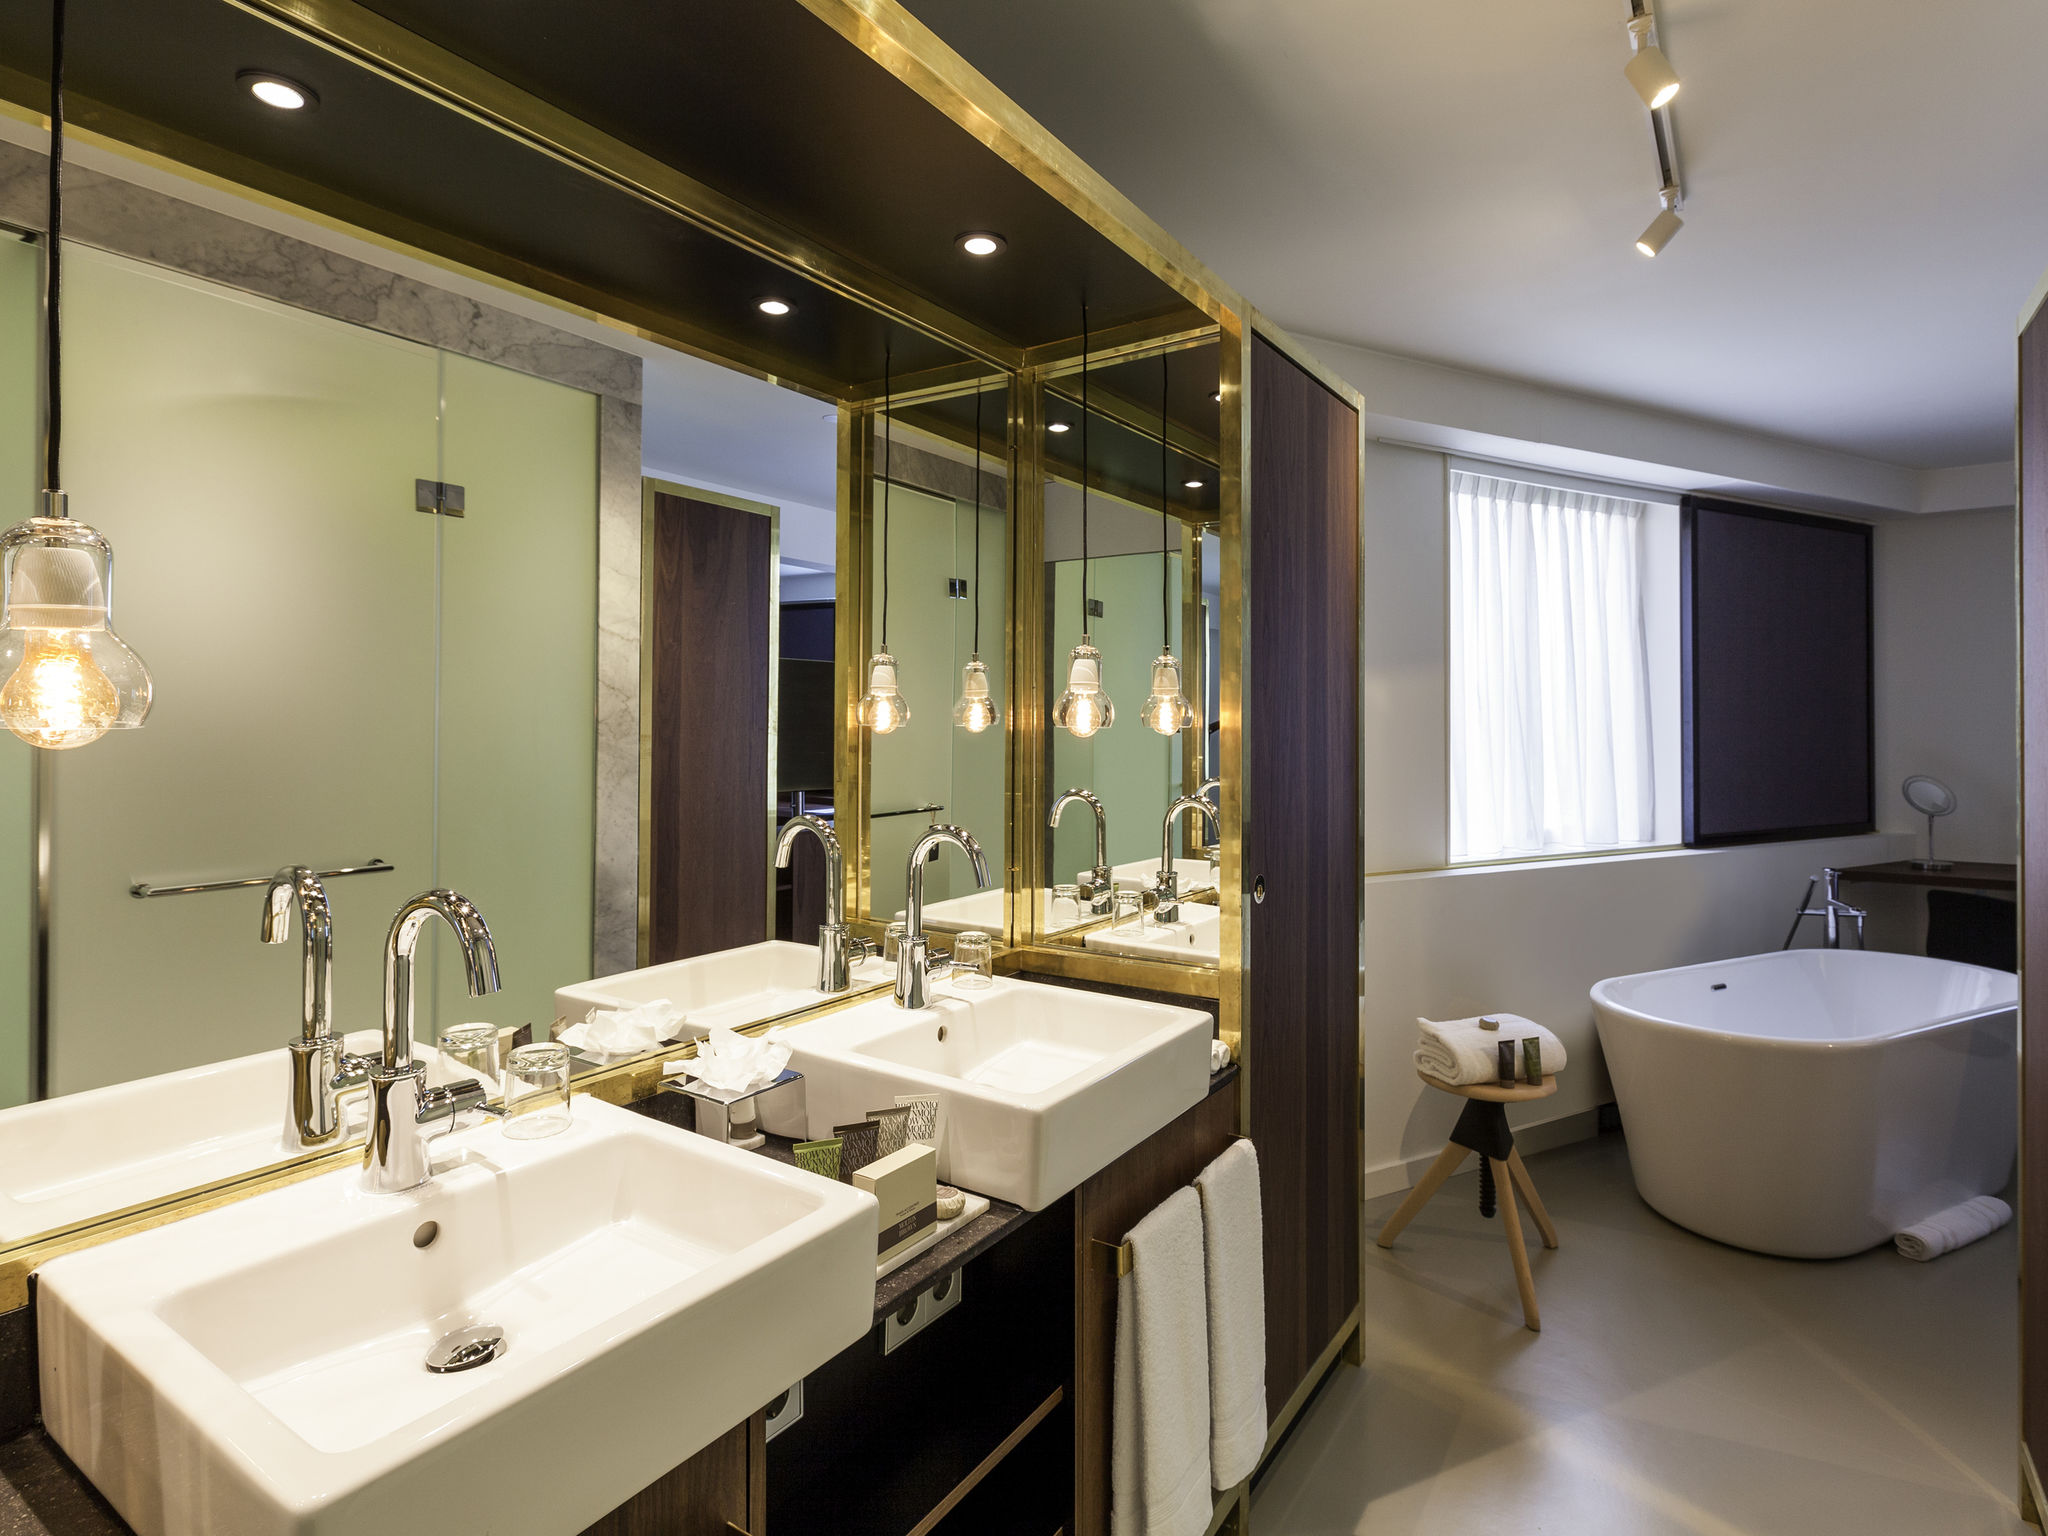 Luxury Hotel Amsterdam INK Hotel MGallery By Sofitel - 8 awesome extras in luxury hotel rooms